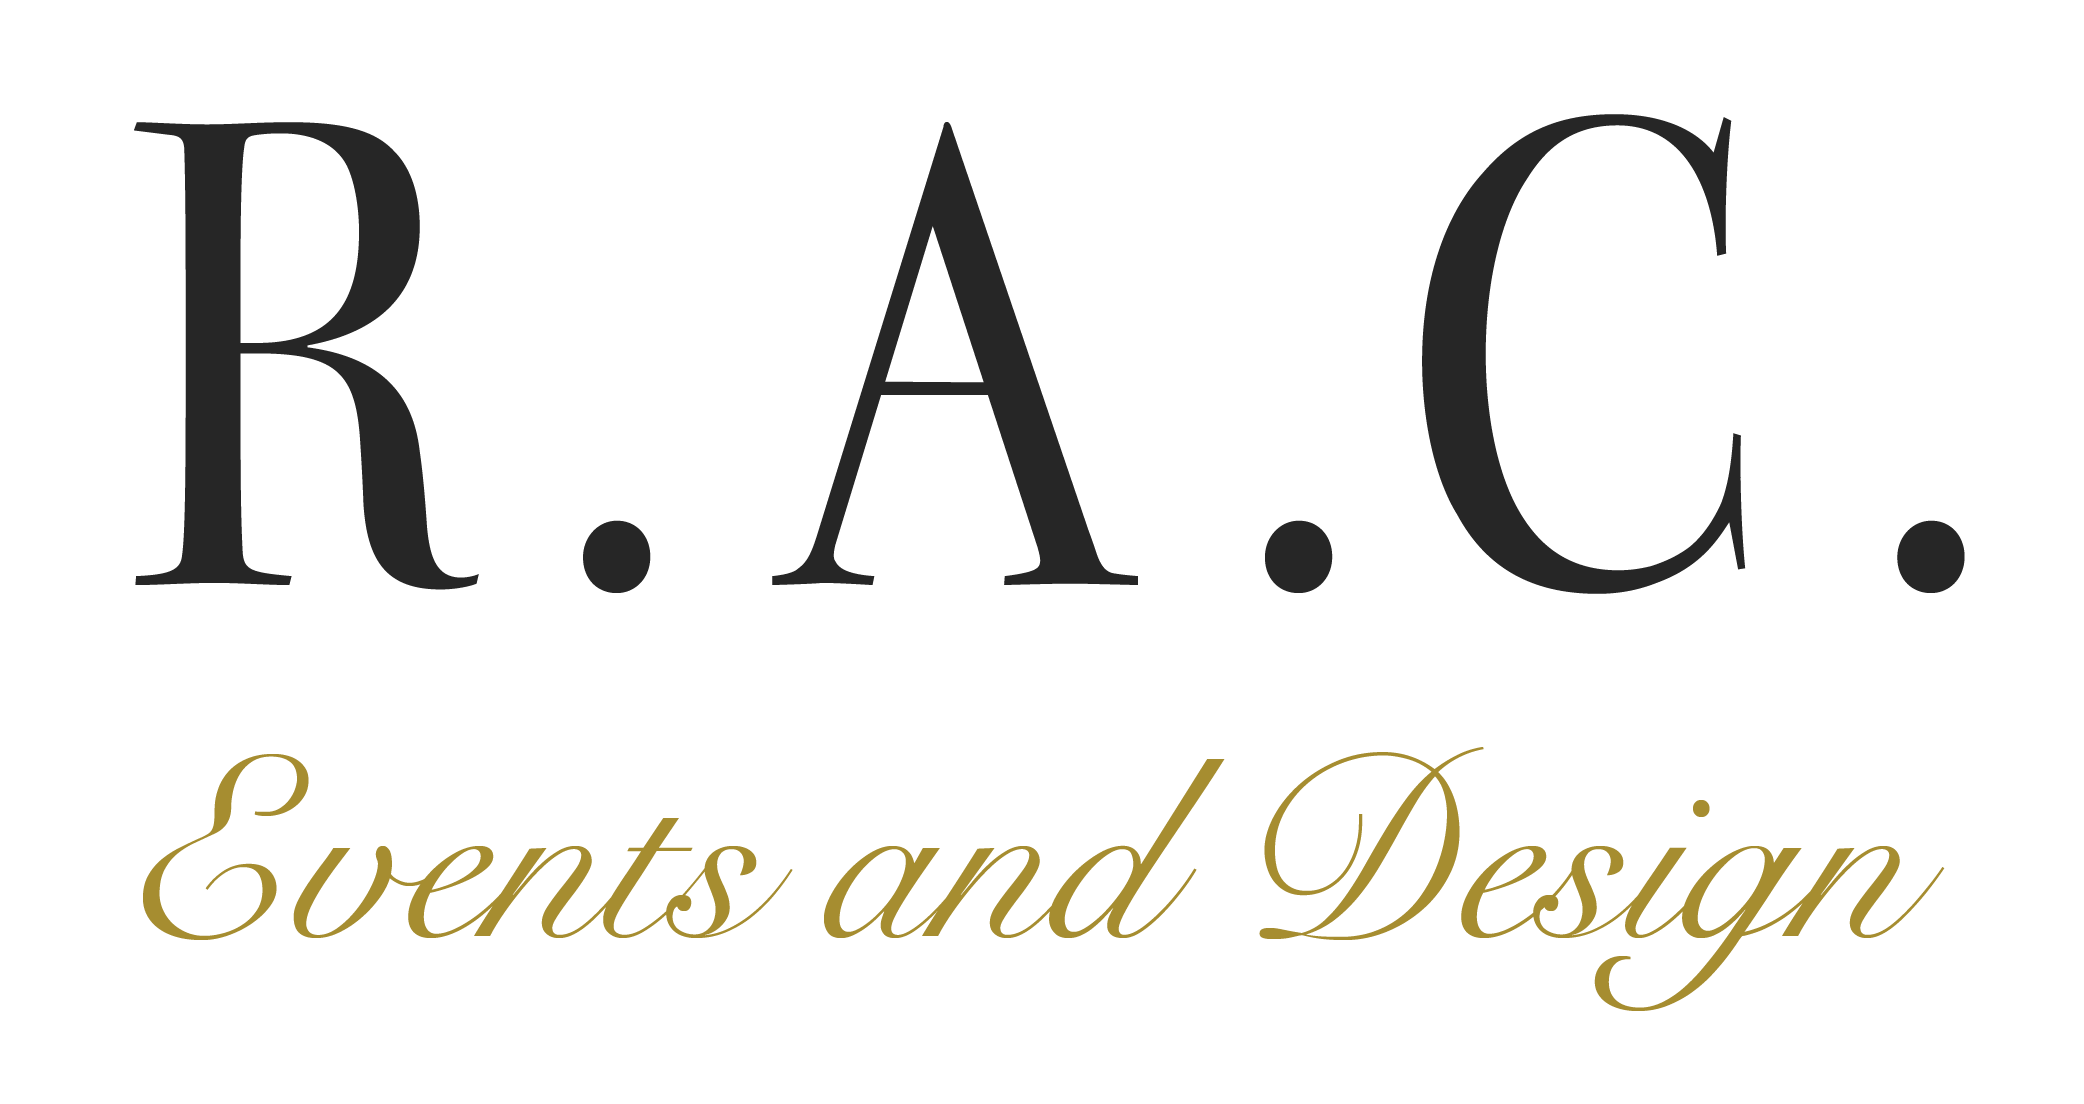 R.A.C. Events and Design Wedding Planner